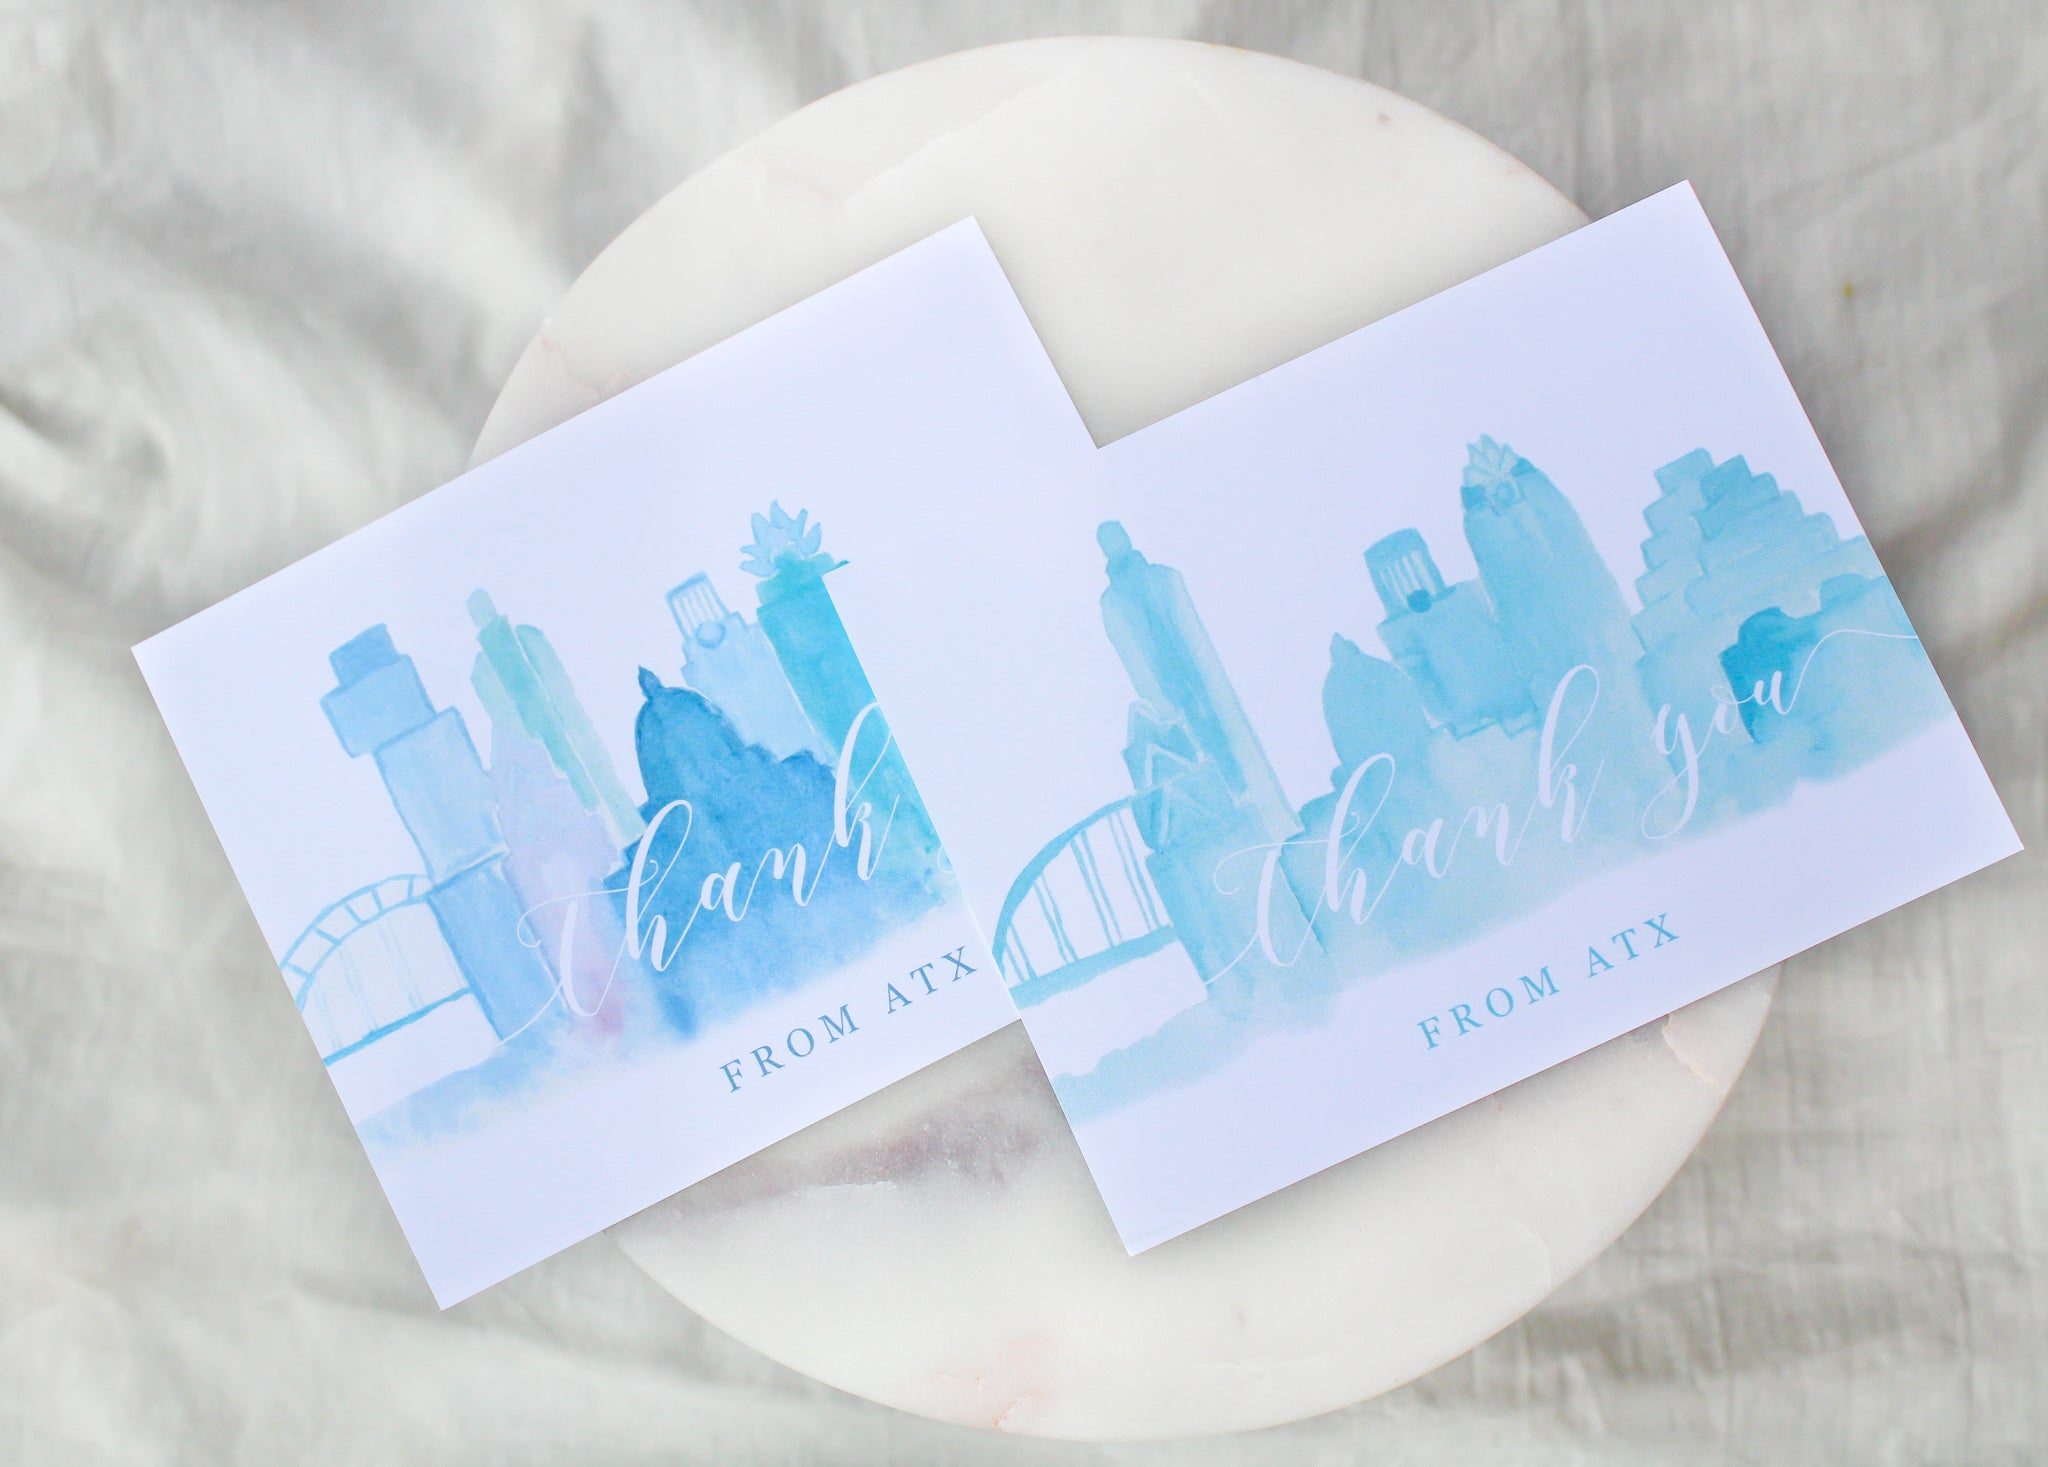 Austin Skyline 'Thank You From ATX' Notecards